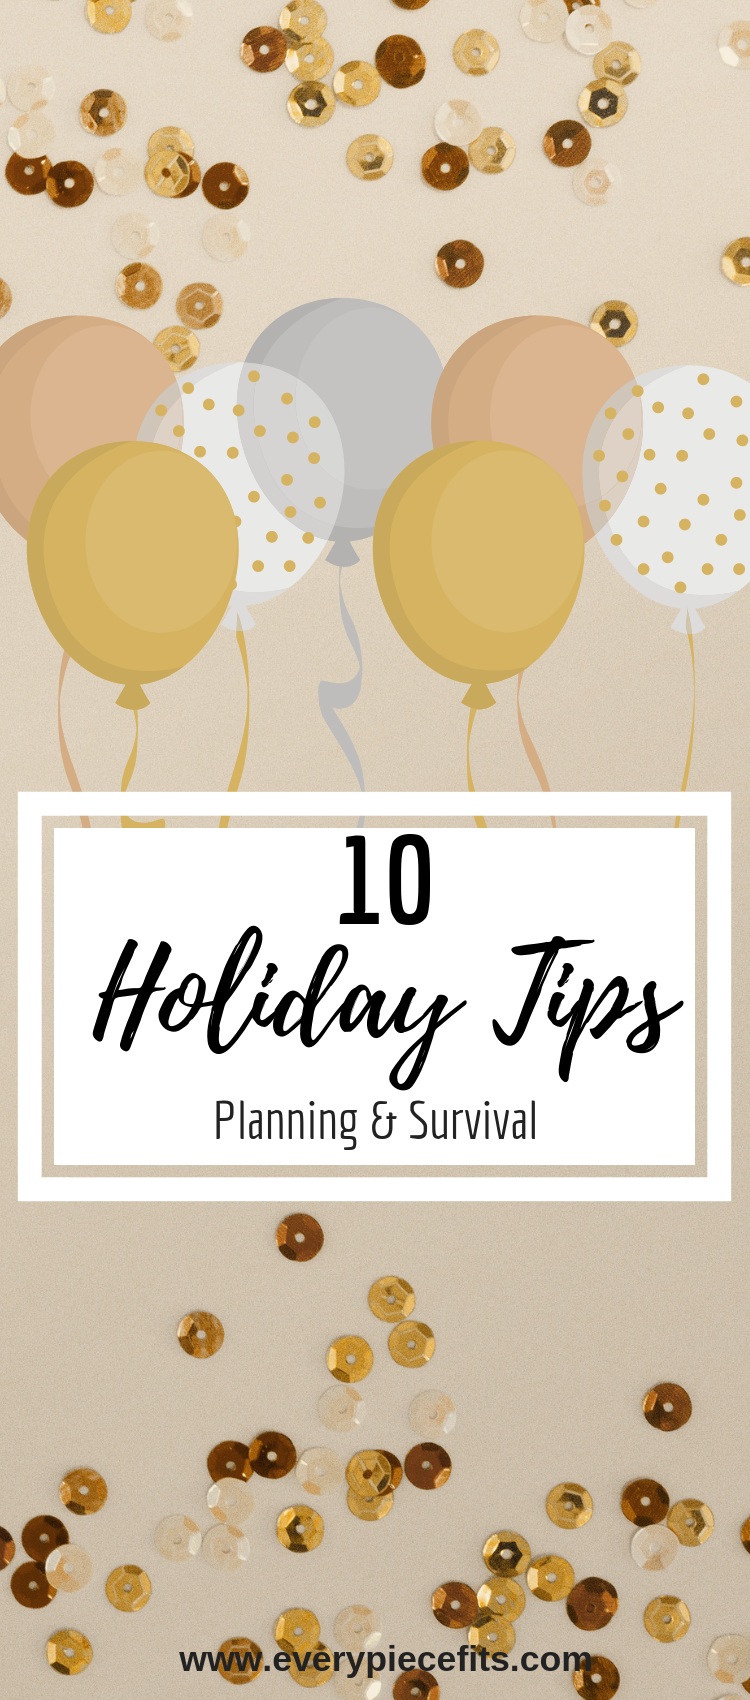 10 Holiday Tips Pinterest.png